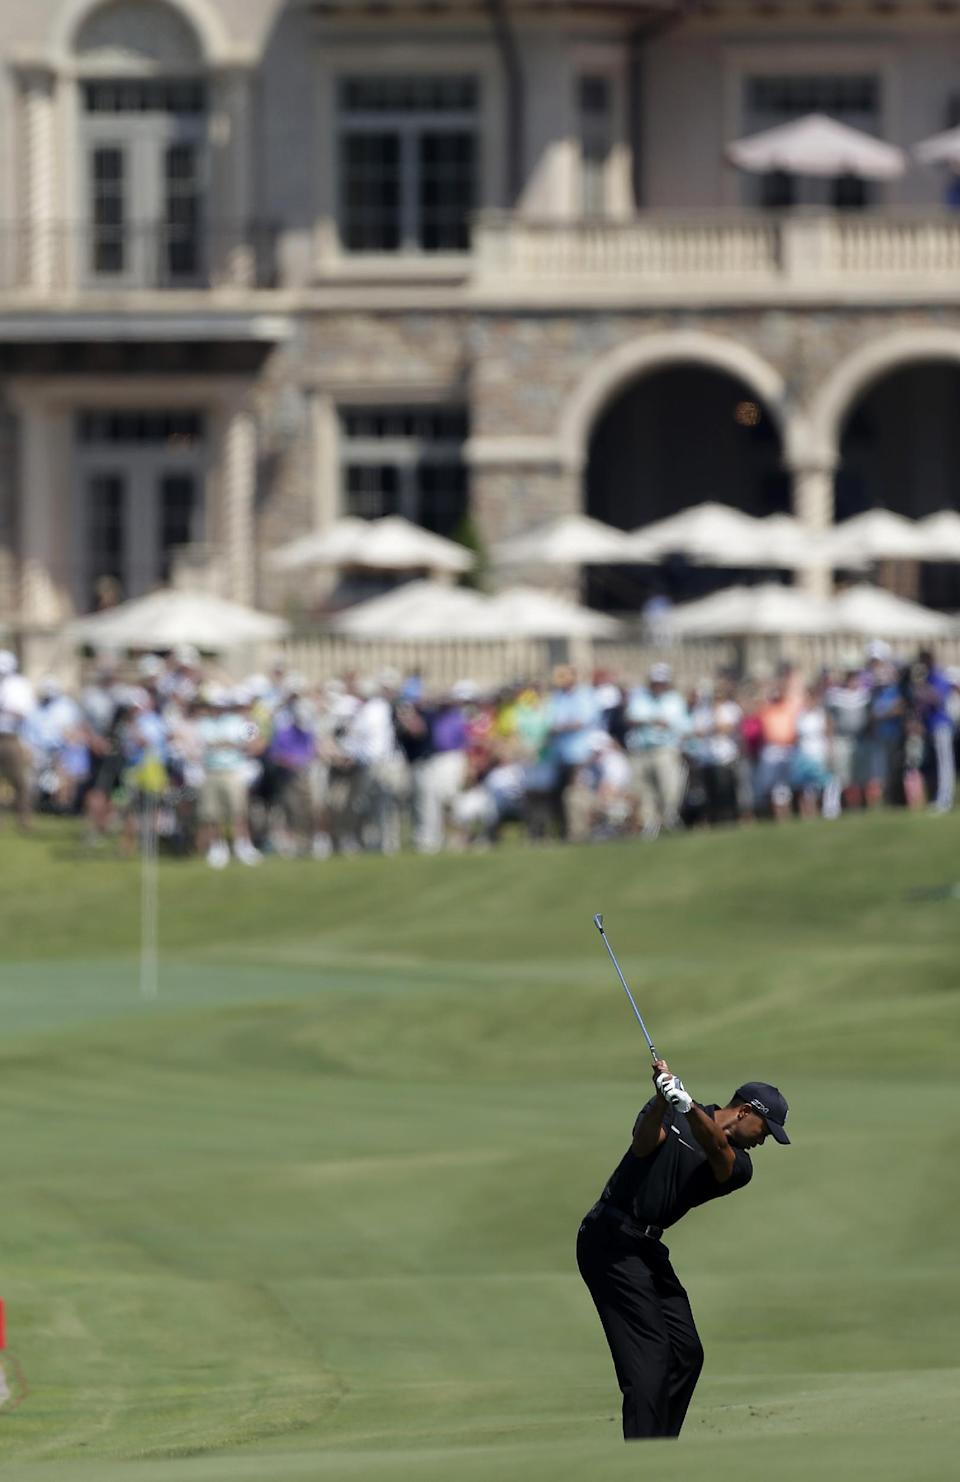 Tiger Woods hits on the 18th fairway during the second round of The Players championship golf tournament at TPC Sawgrass, Friday, May 10, 2013 in Ponte Vedra Beach, Fla. (AP Photo/Chris O'Meara)